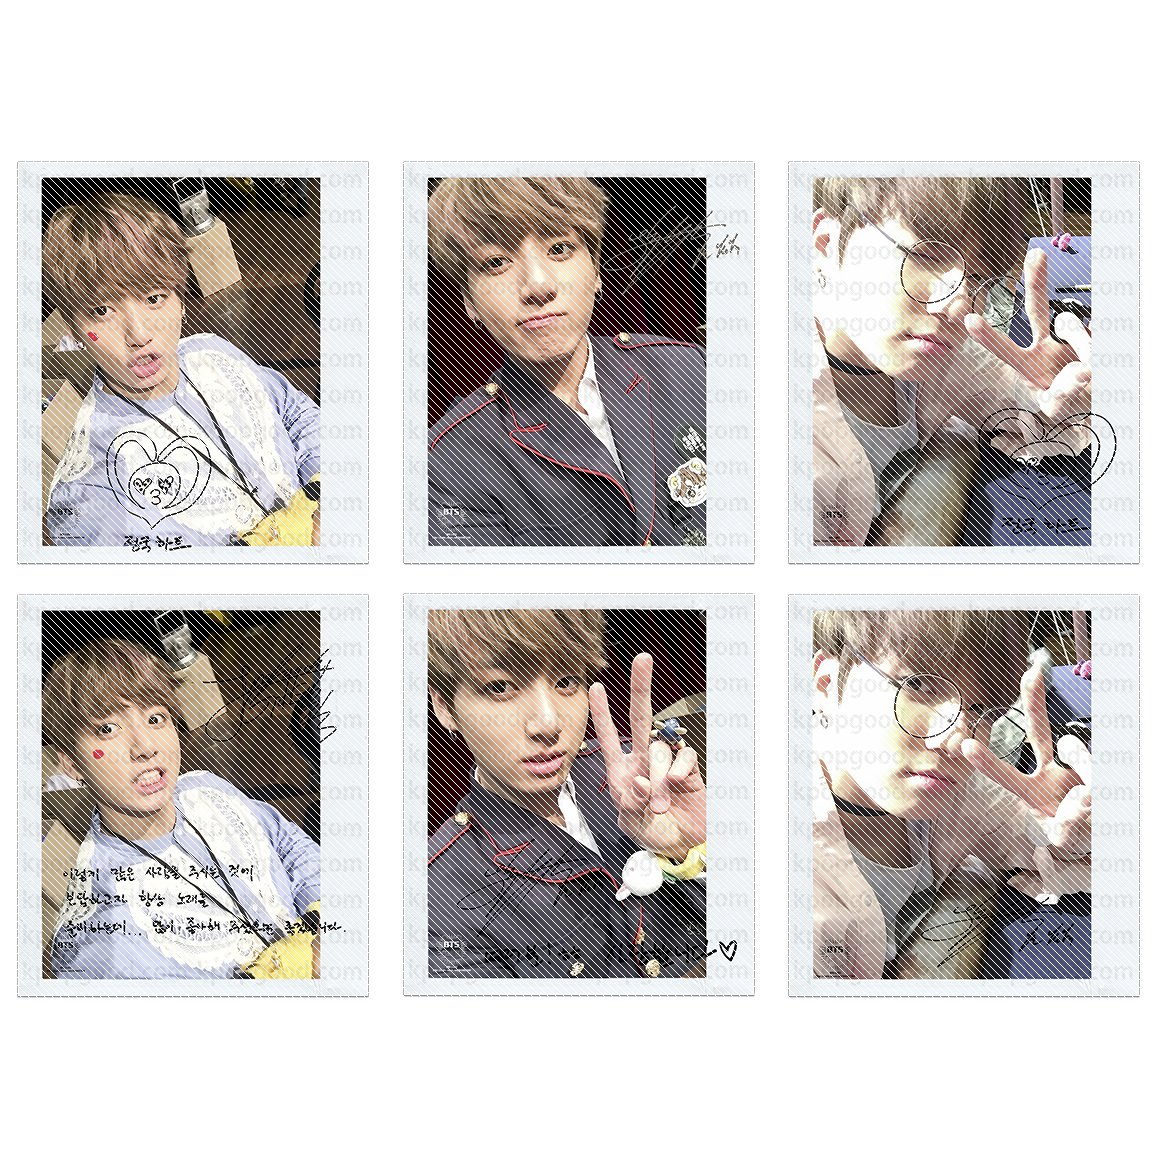 BTS bangtan boys you never walk alone jungkook selfie wide polaroid photo set